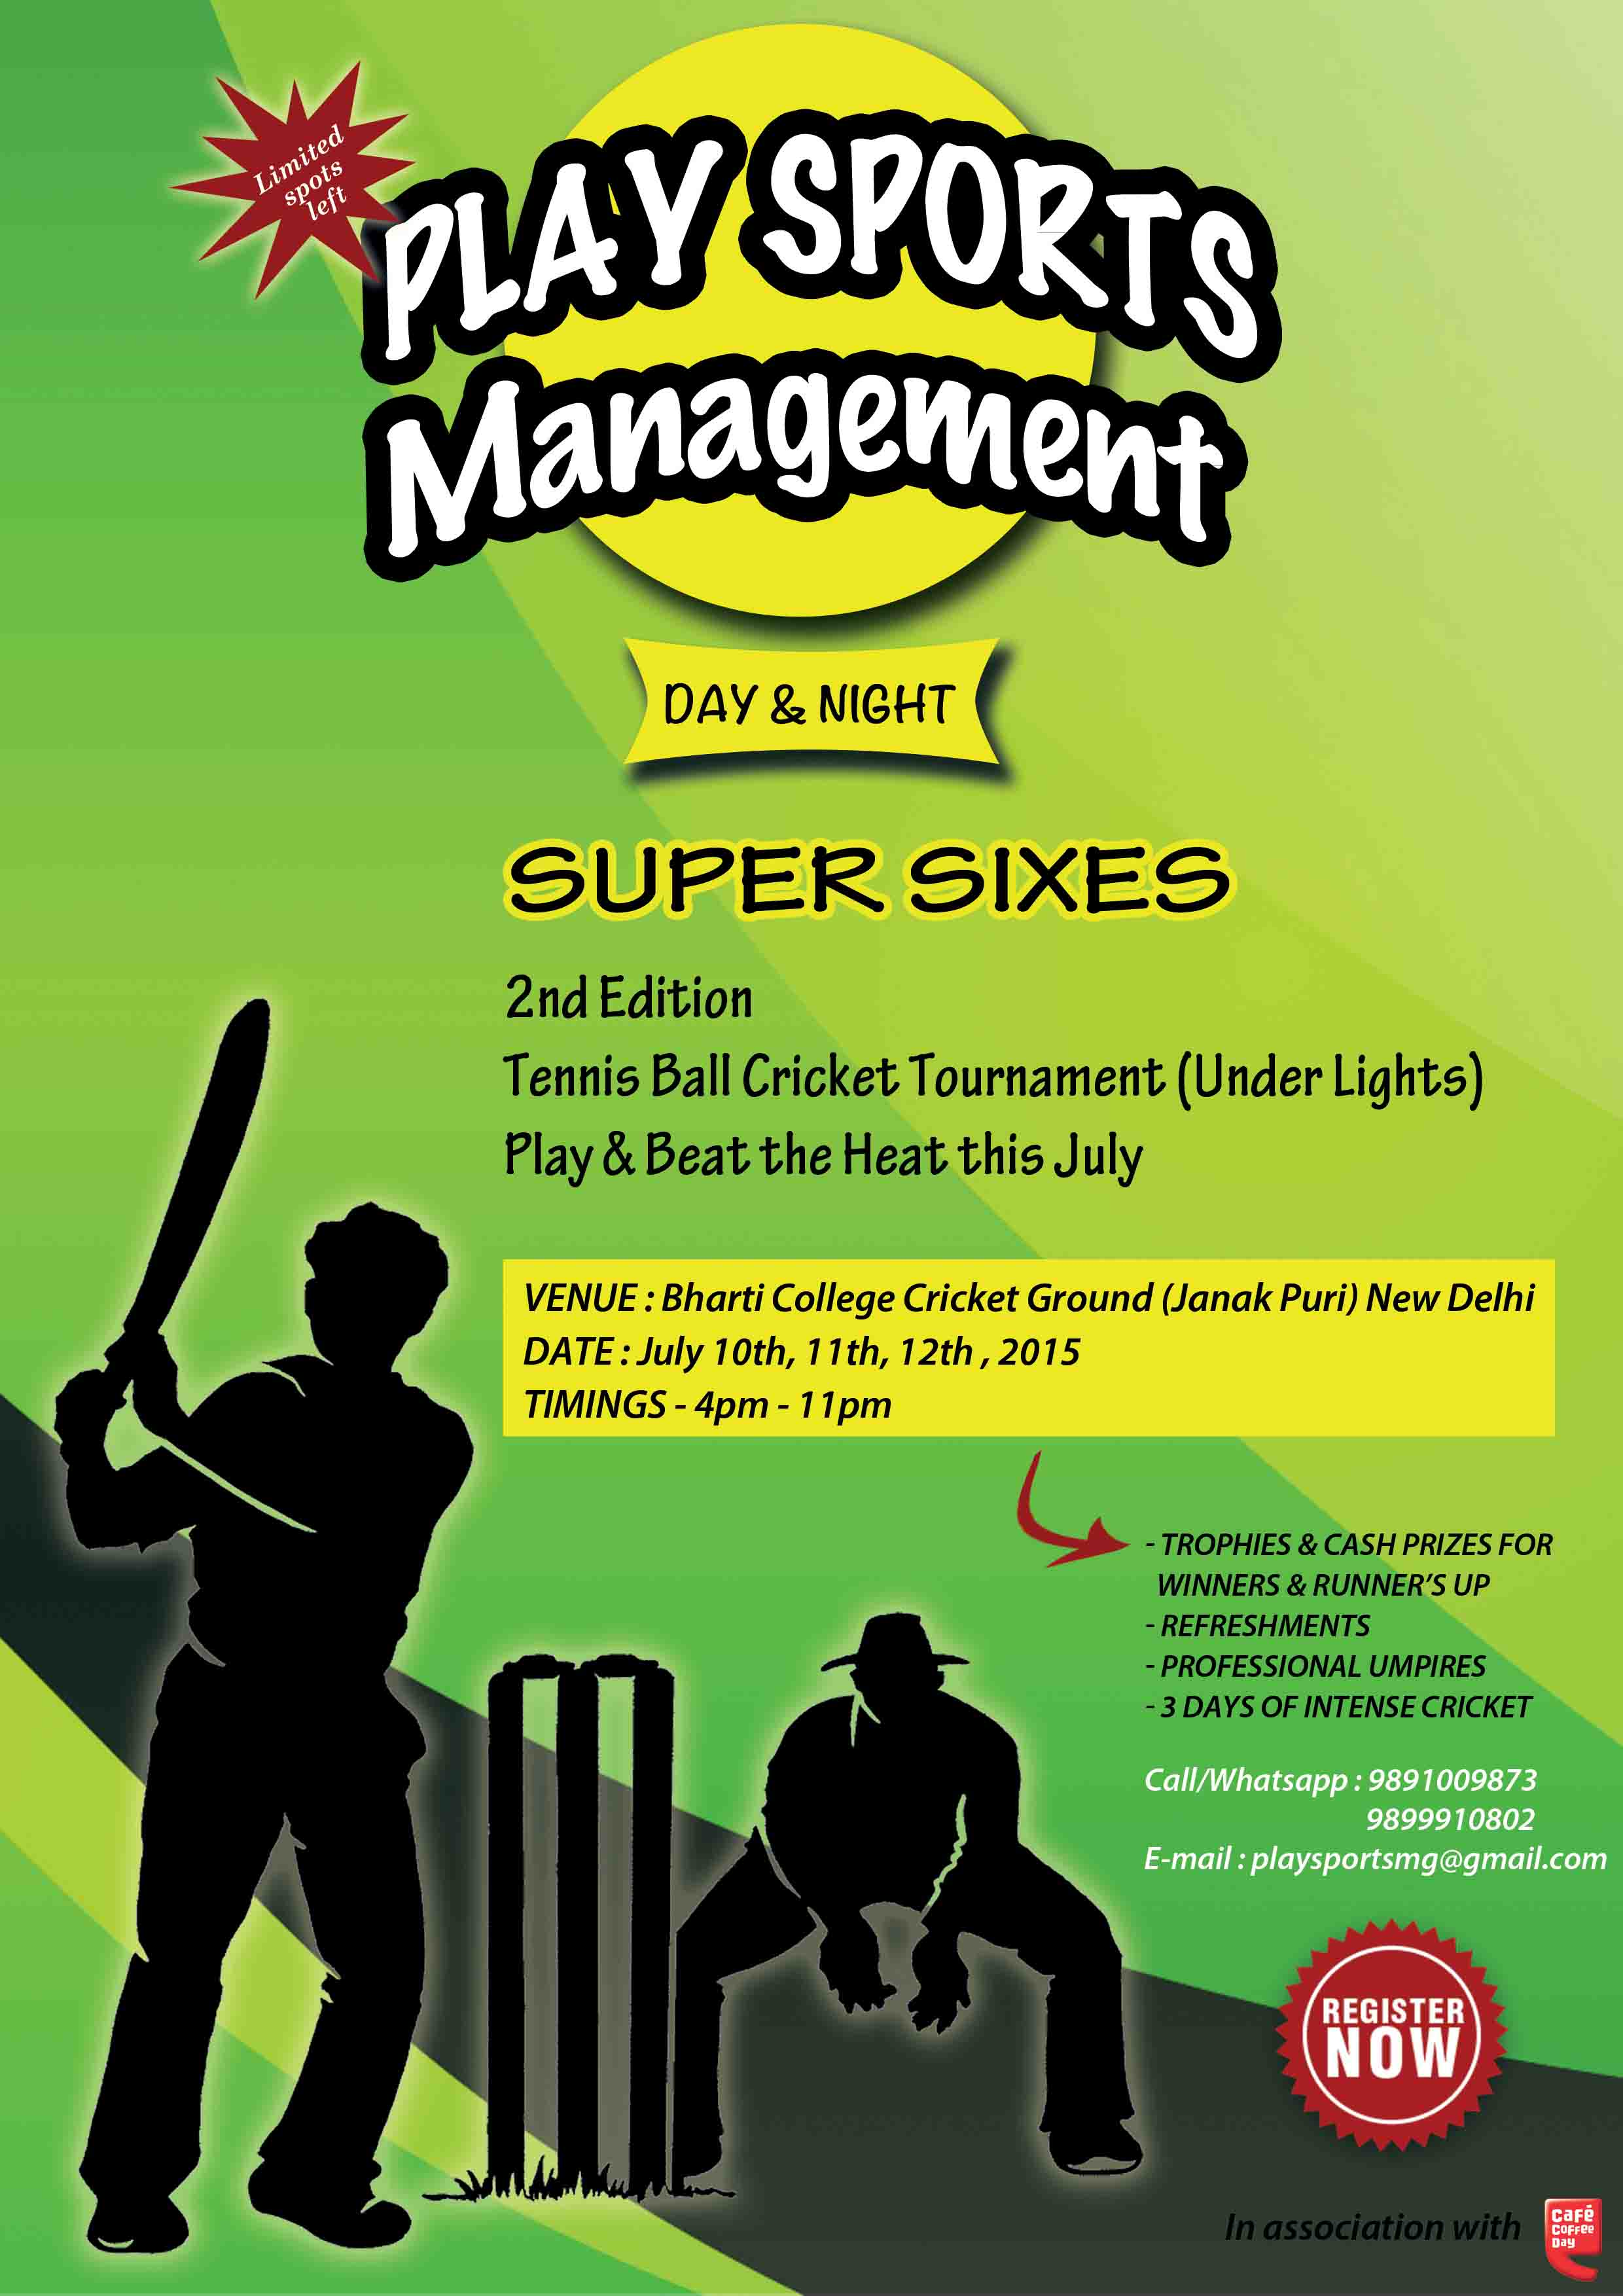 Super Sixes Cricket Tournament